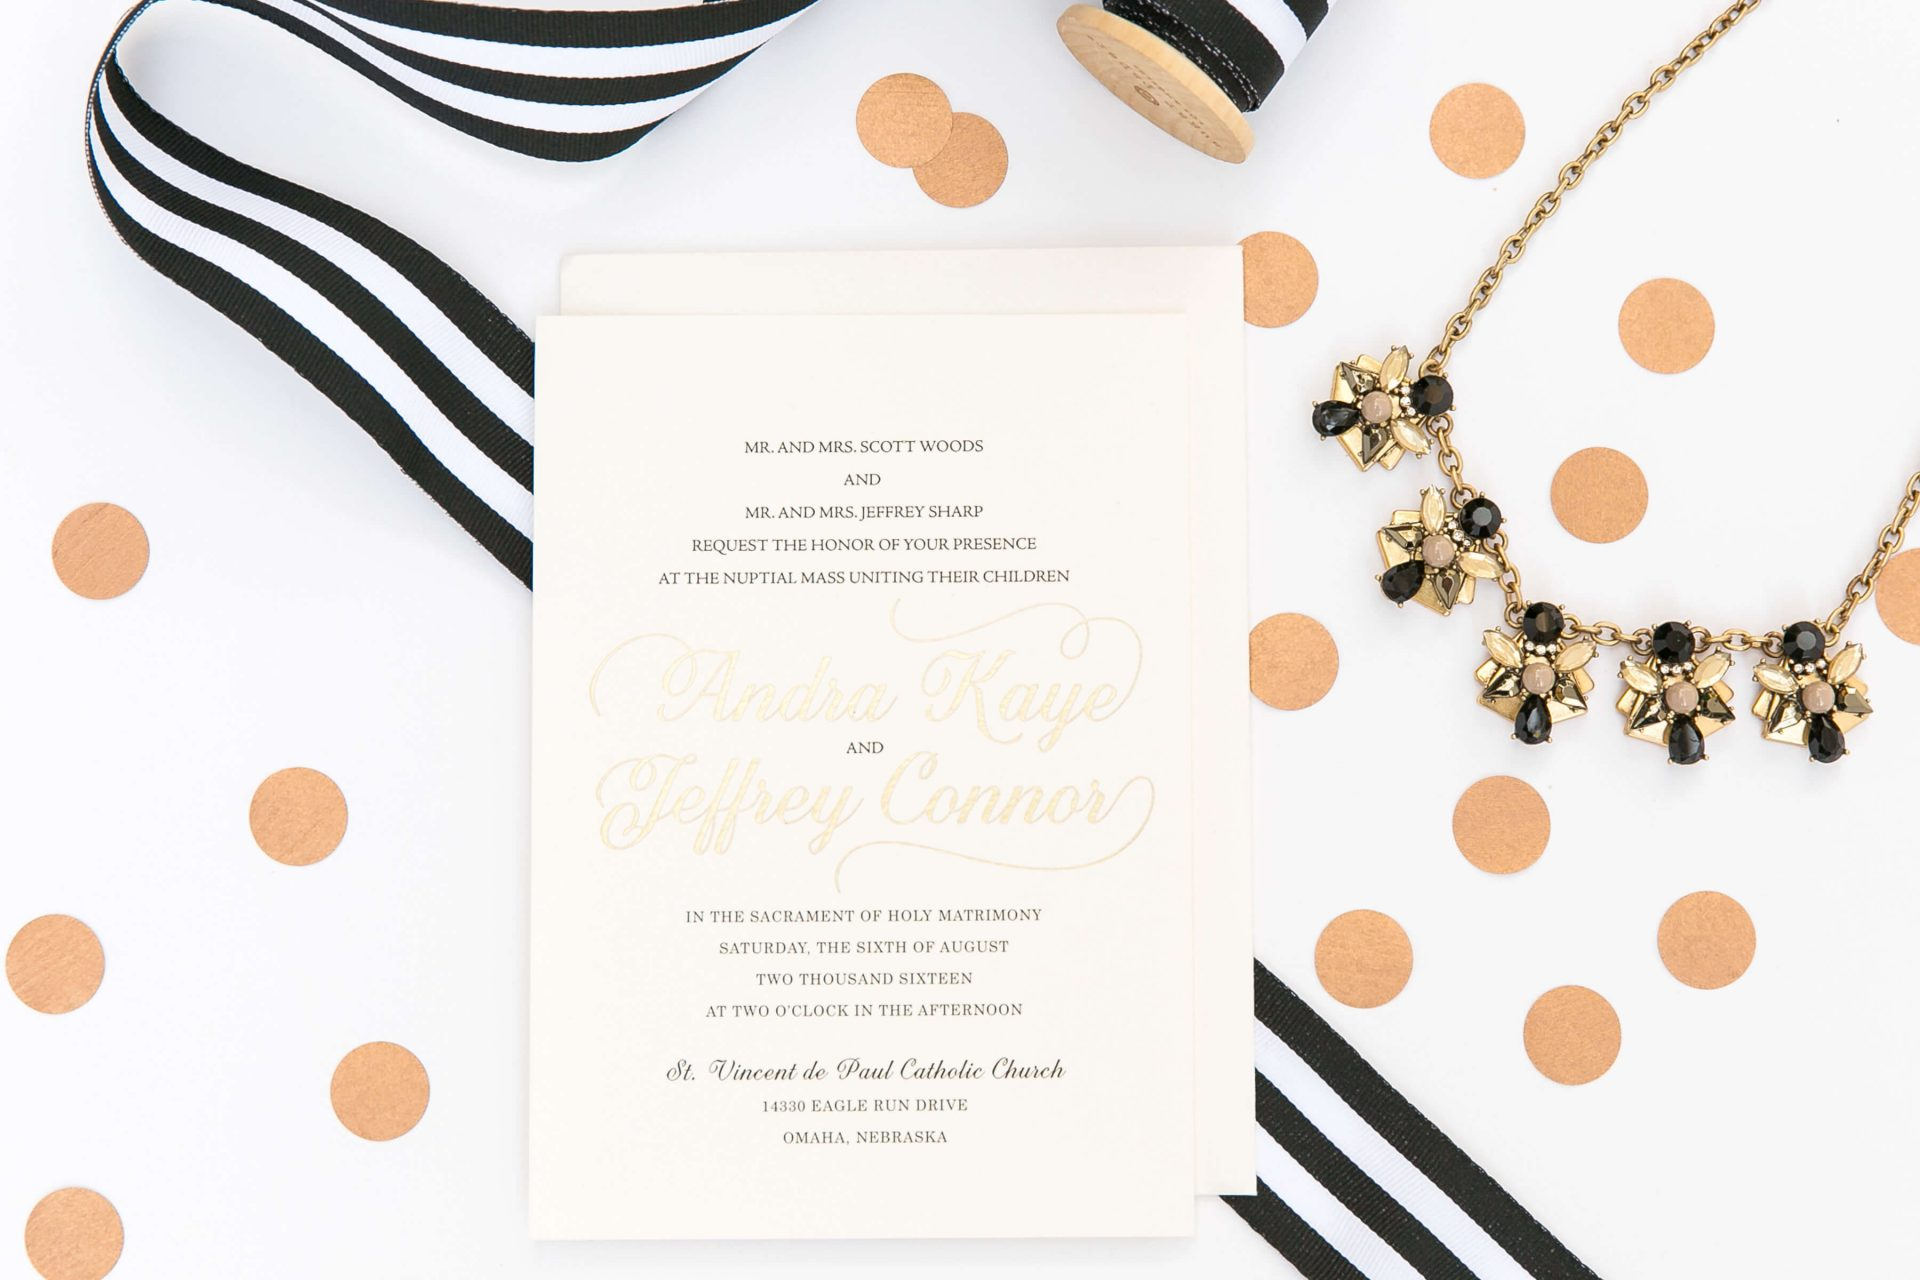 View More Http Amalieorrangephotography Pass Us Dsy Invitations